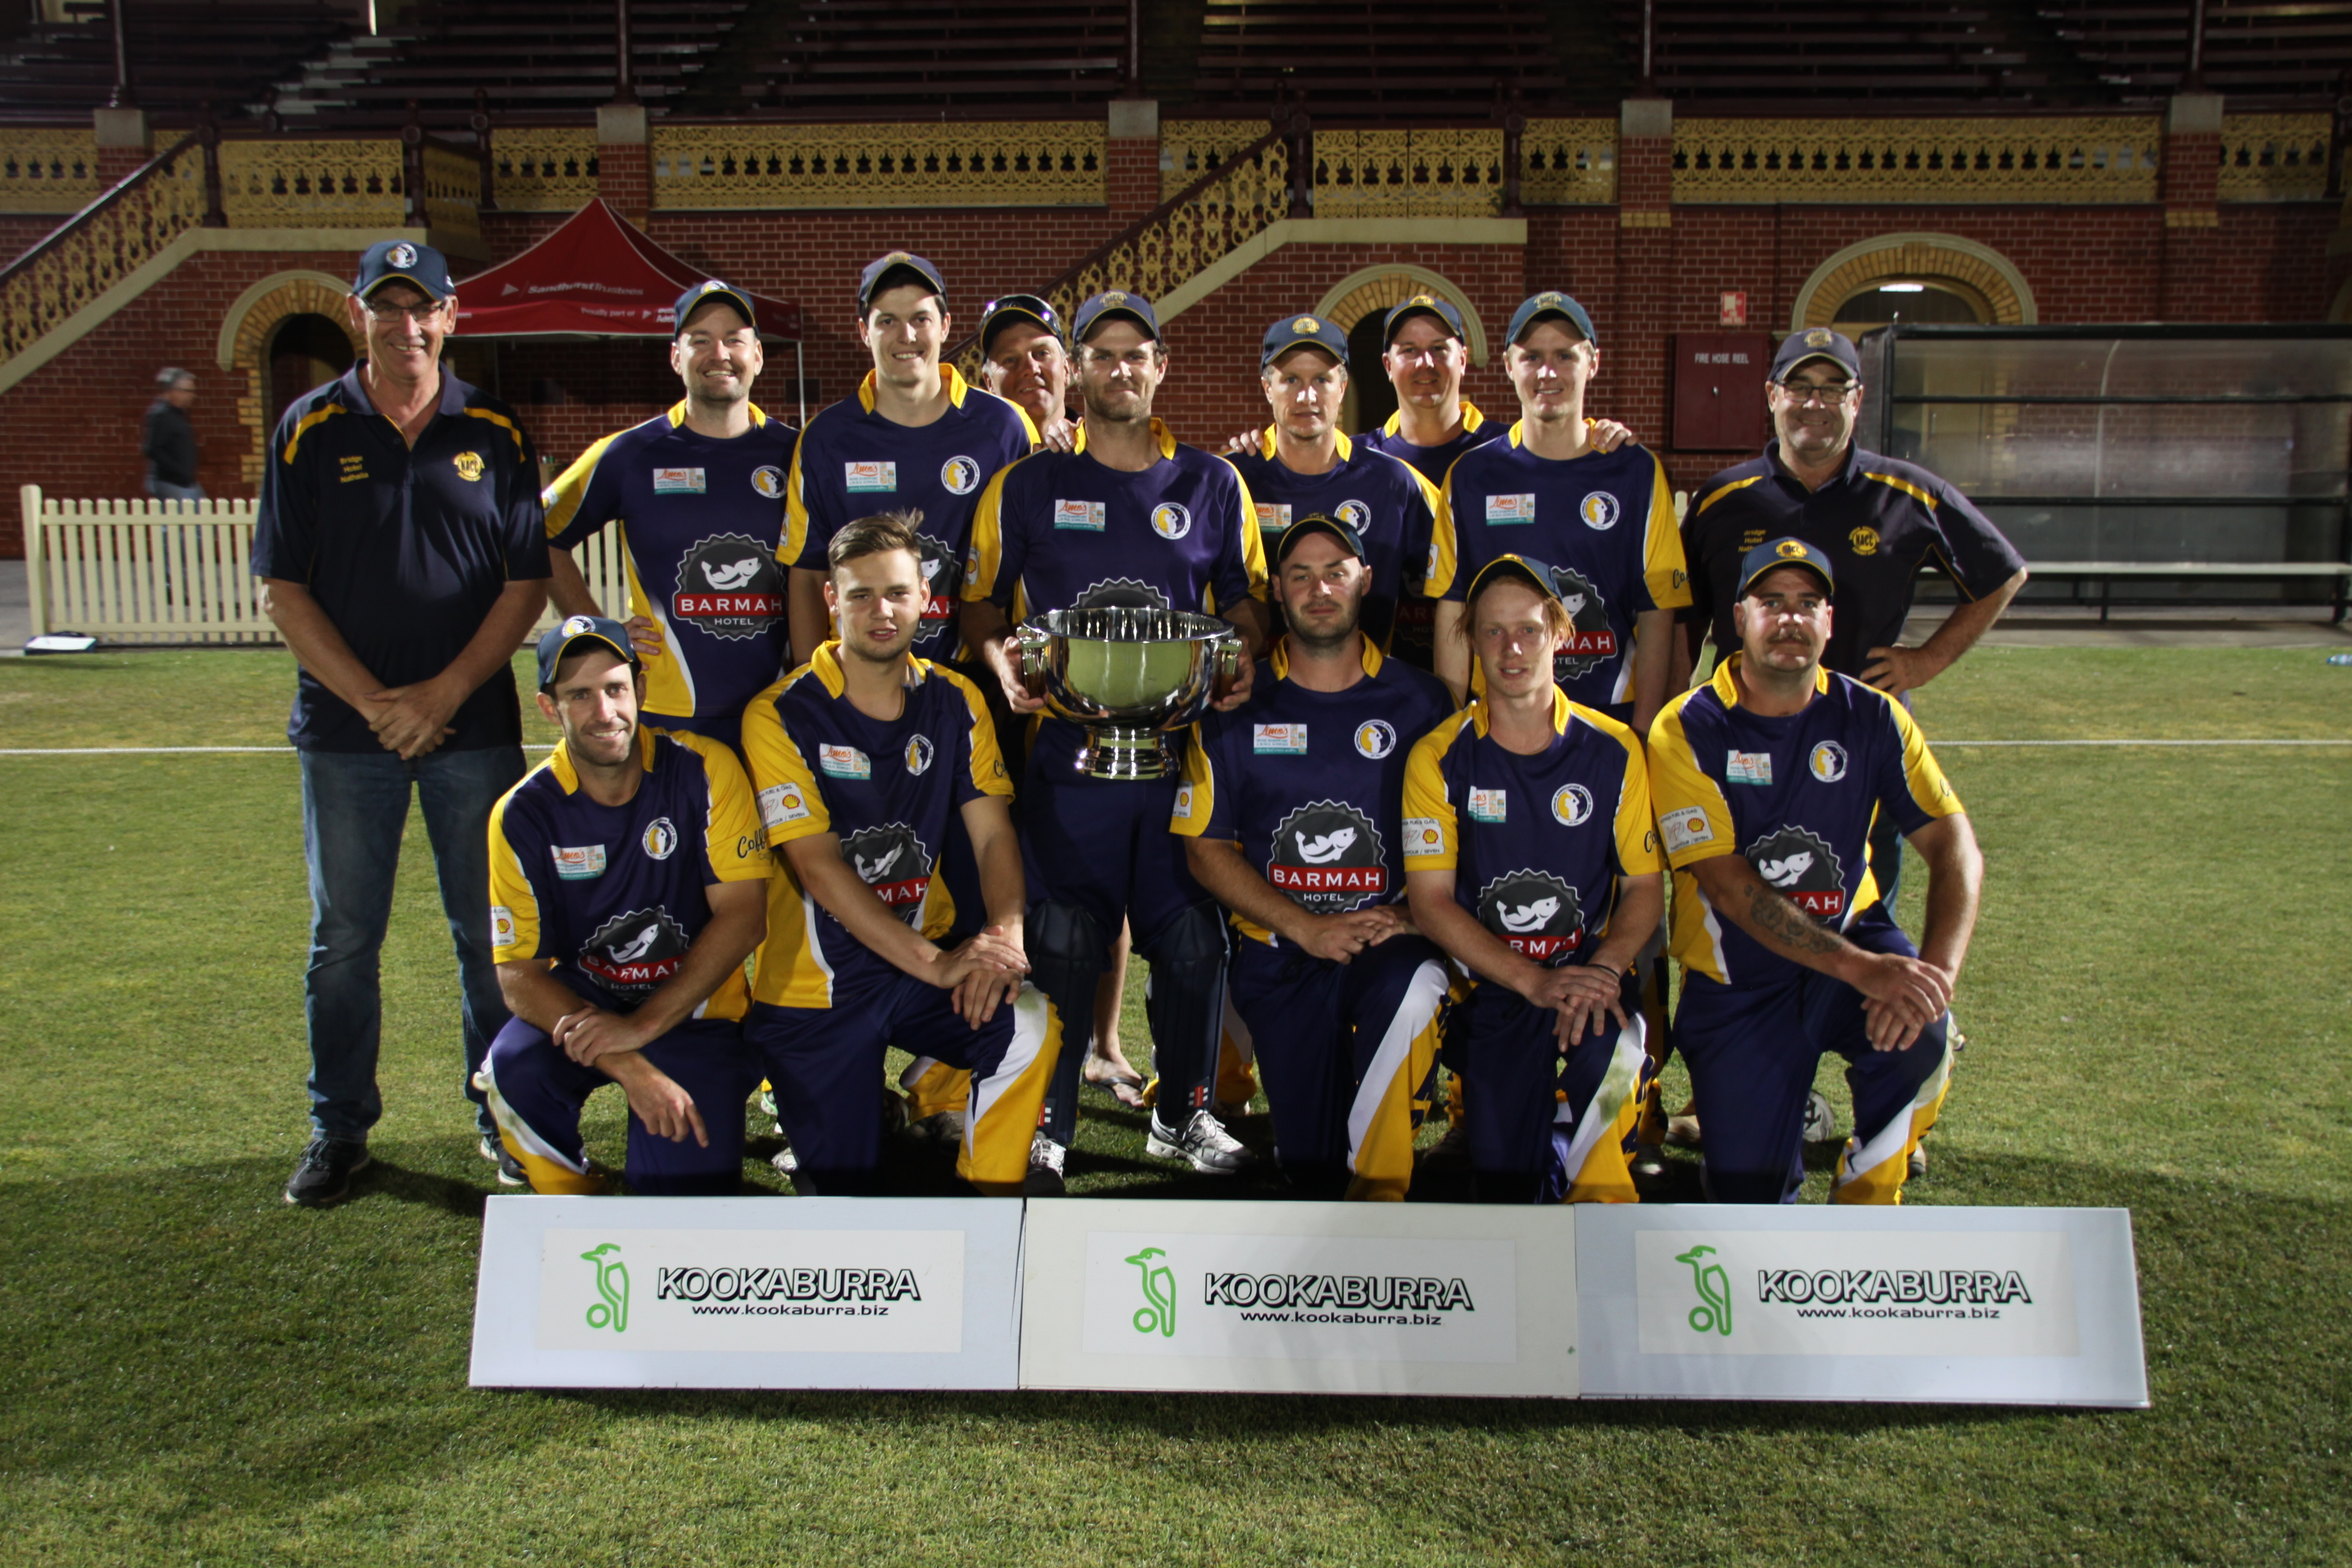 Northern rivers cricket